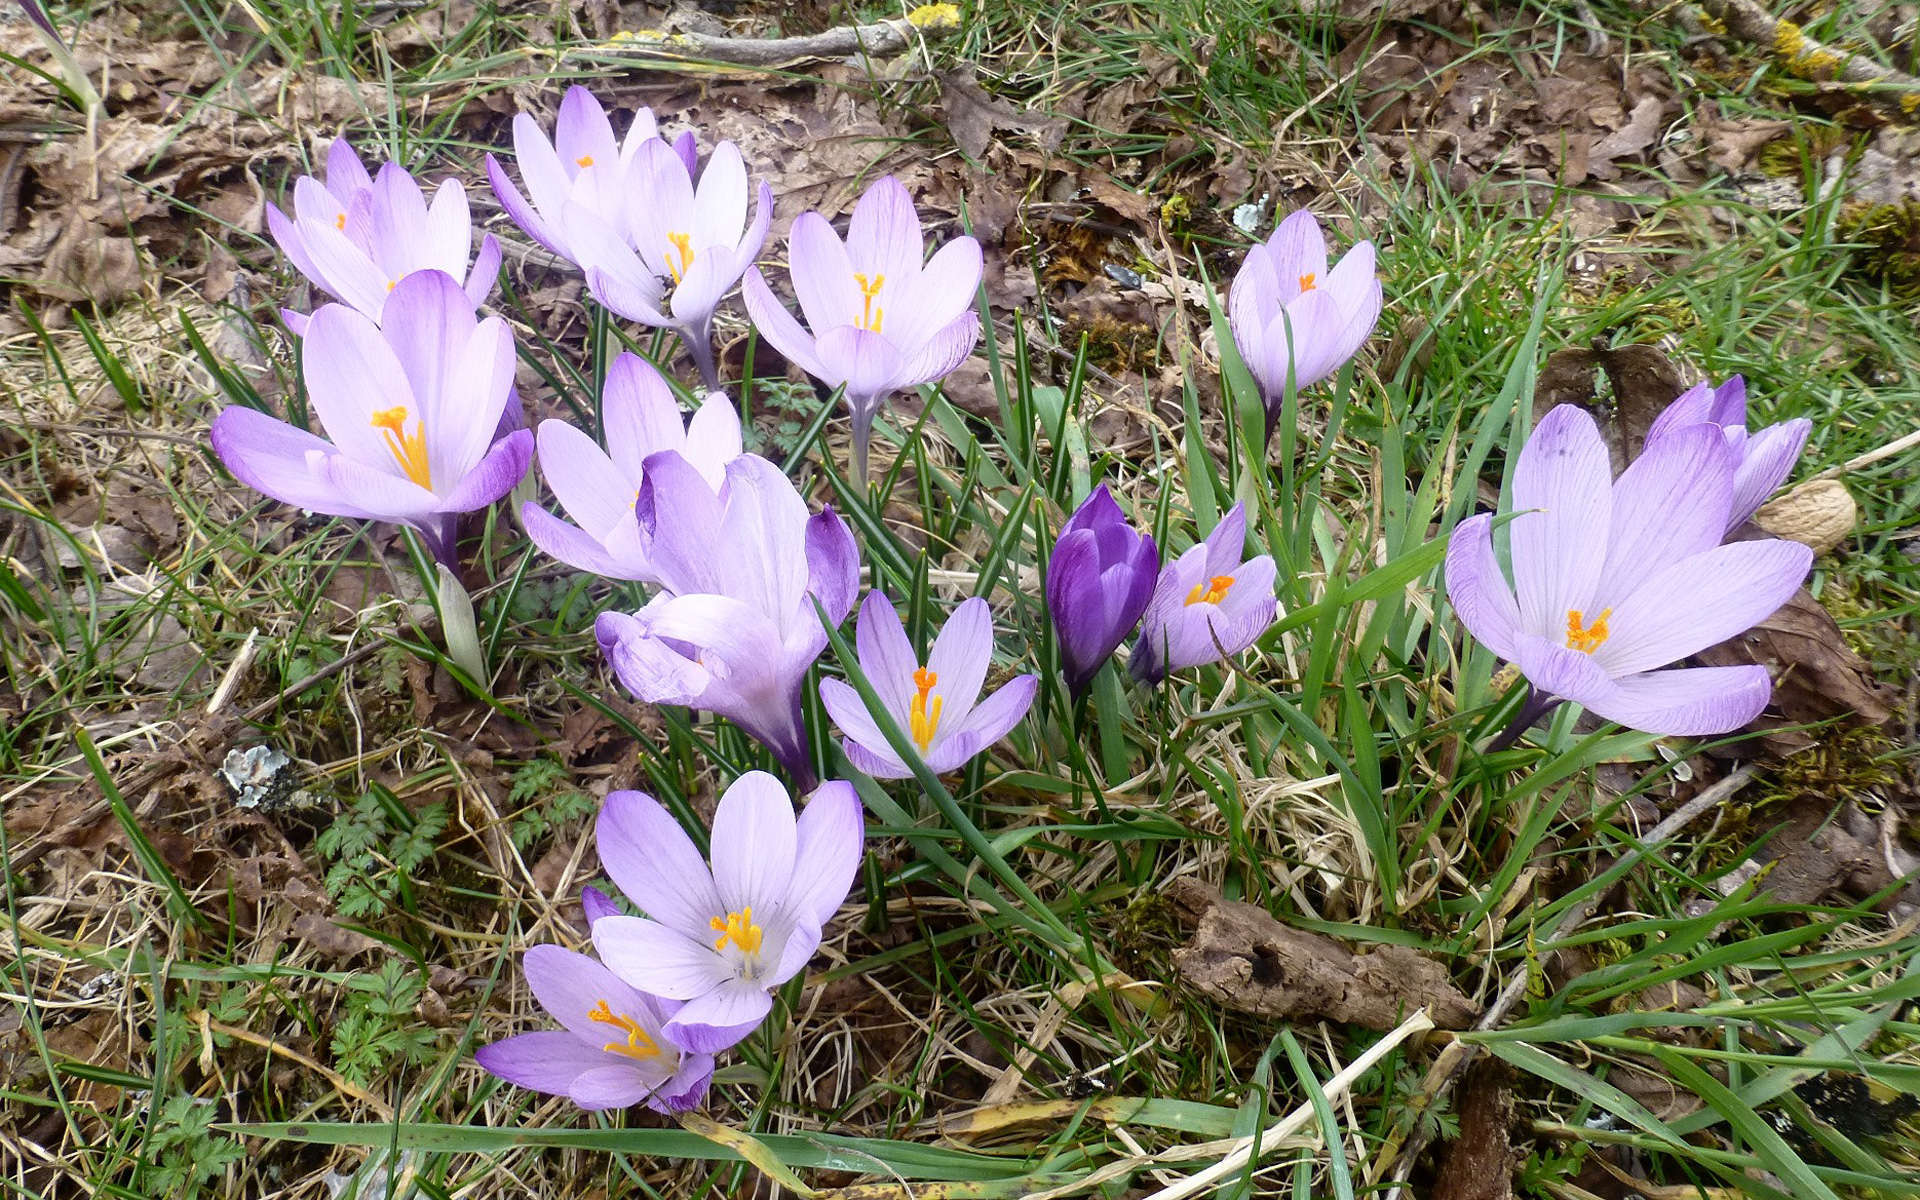 Crocus de printemps (Crédits: nociveglia - Flickr)